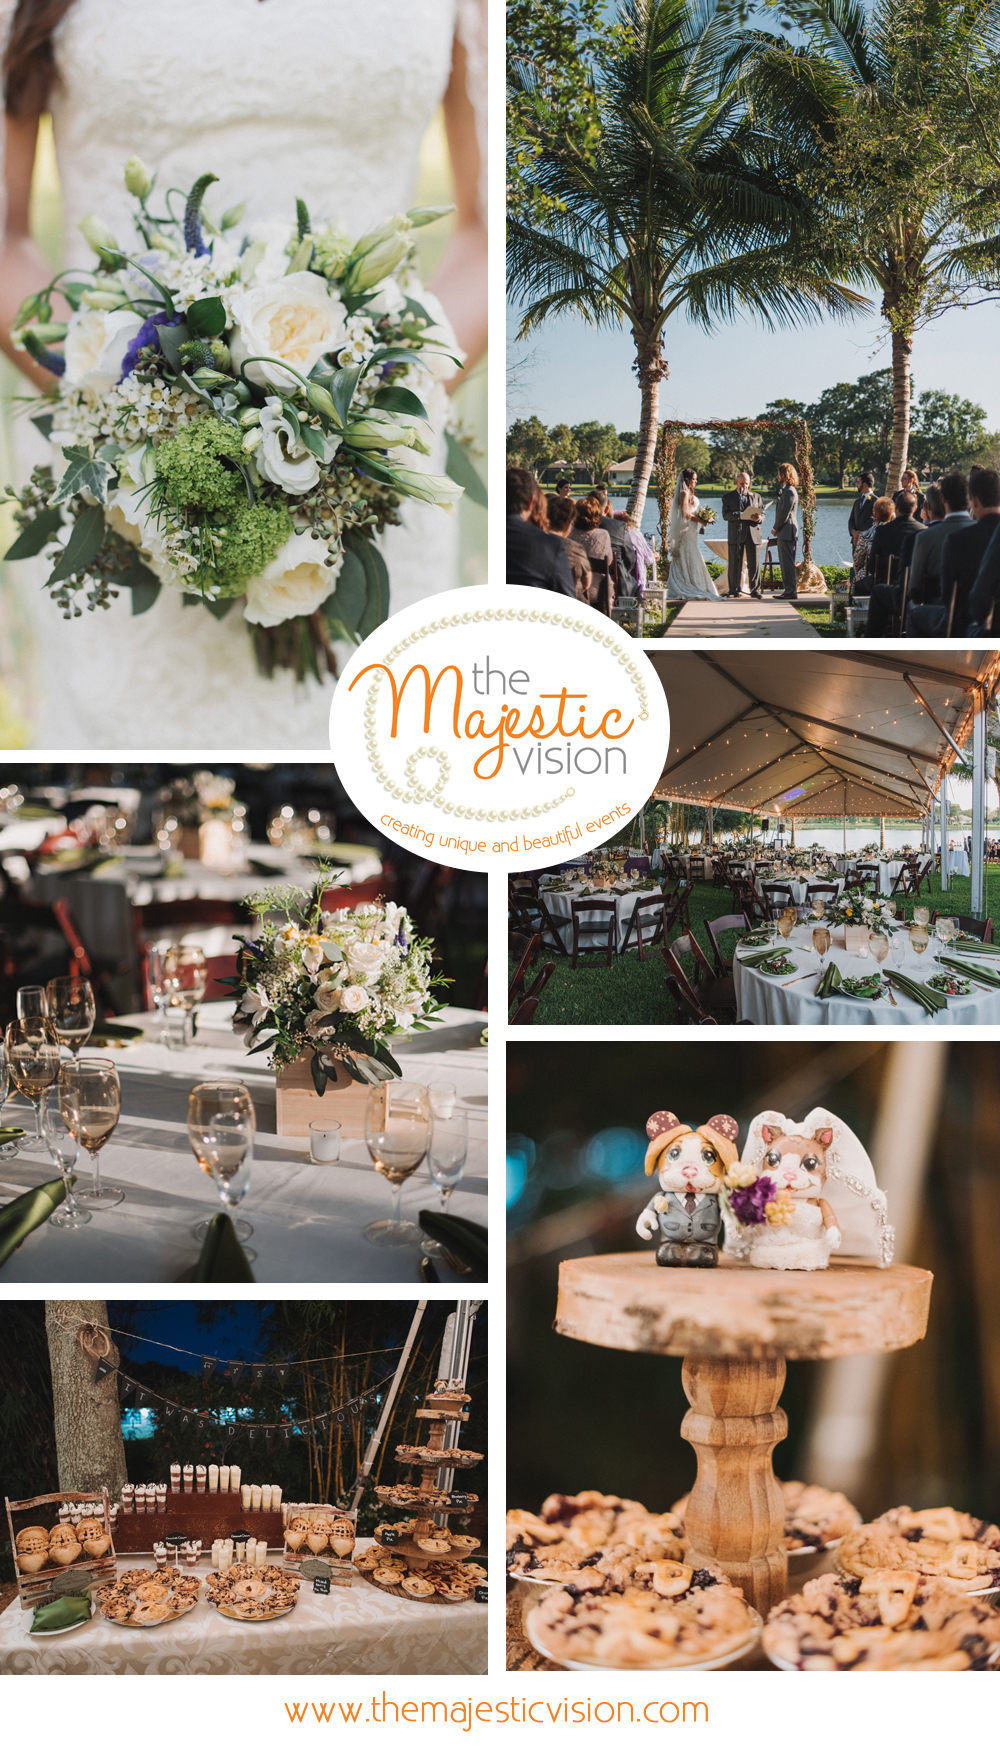 Elegant Backyard Wedding | The Majestic Vision Wedding Planning | Palm Beach, FL | www.themajesticvision.com | Robert Madrid Photography